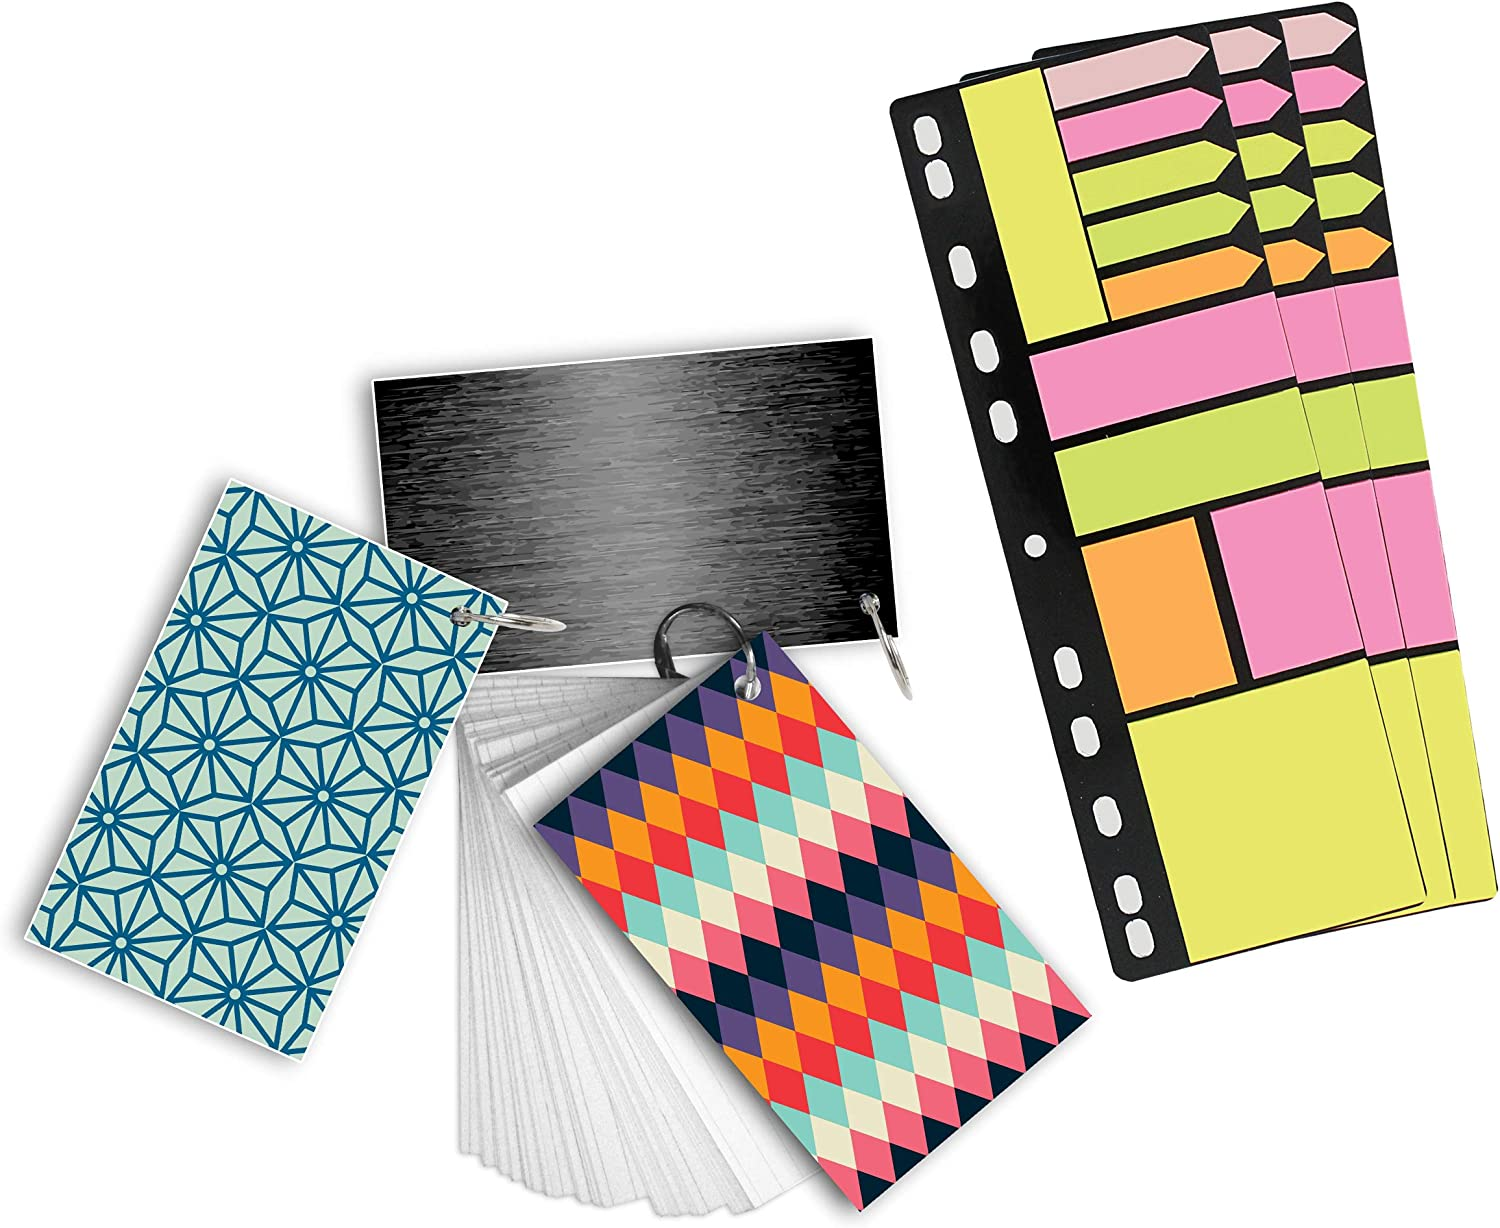 Includes 810 Sticky Notes and 225 Index Cards Redi-Tag Study Buddies Multi-Pack 10075 Binder Notes and Cram Cards